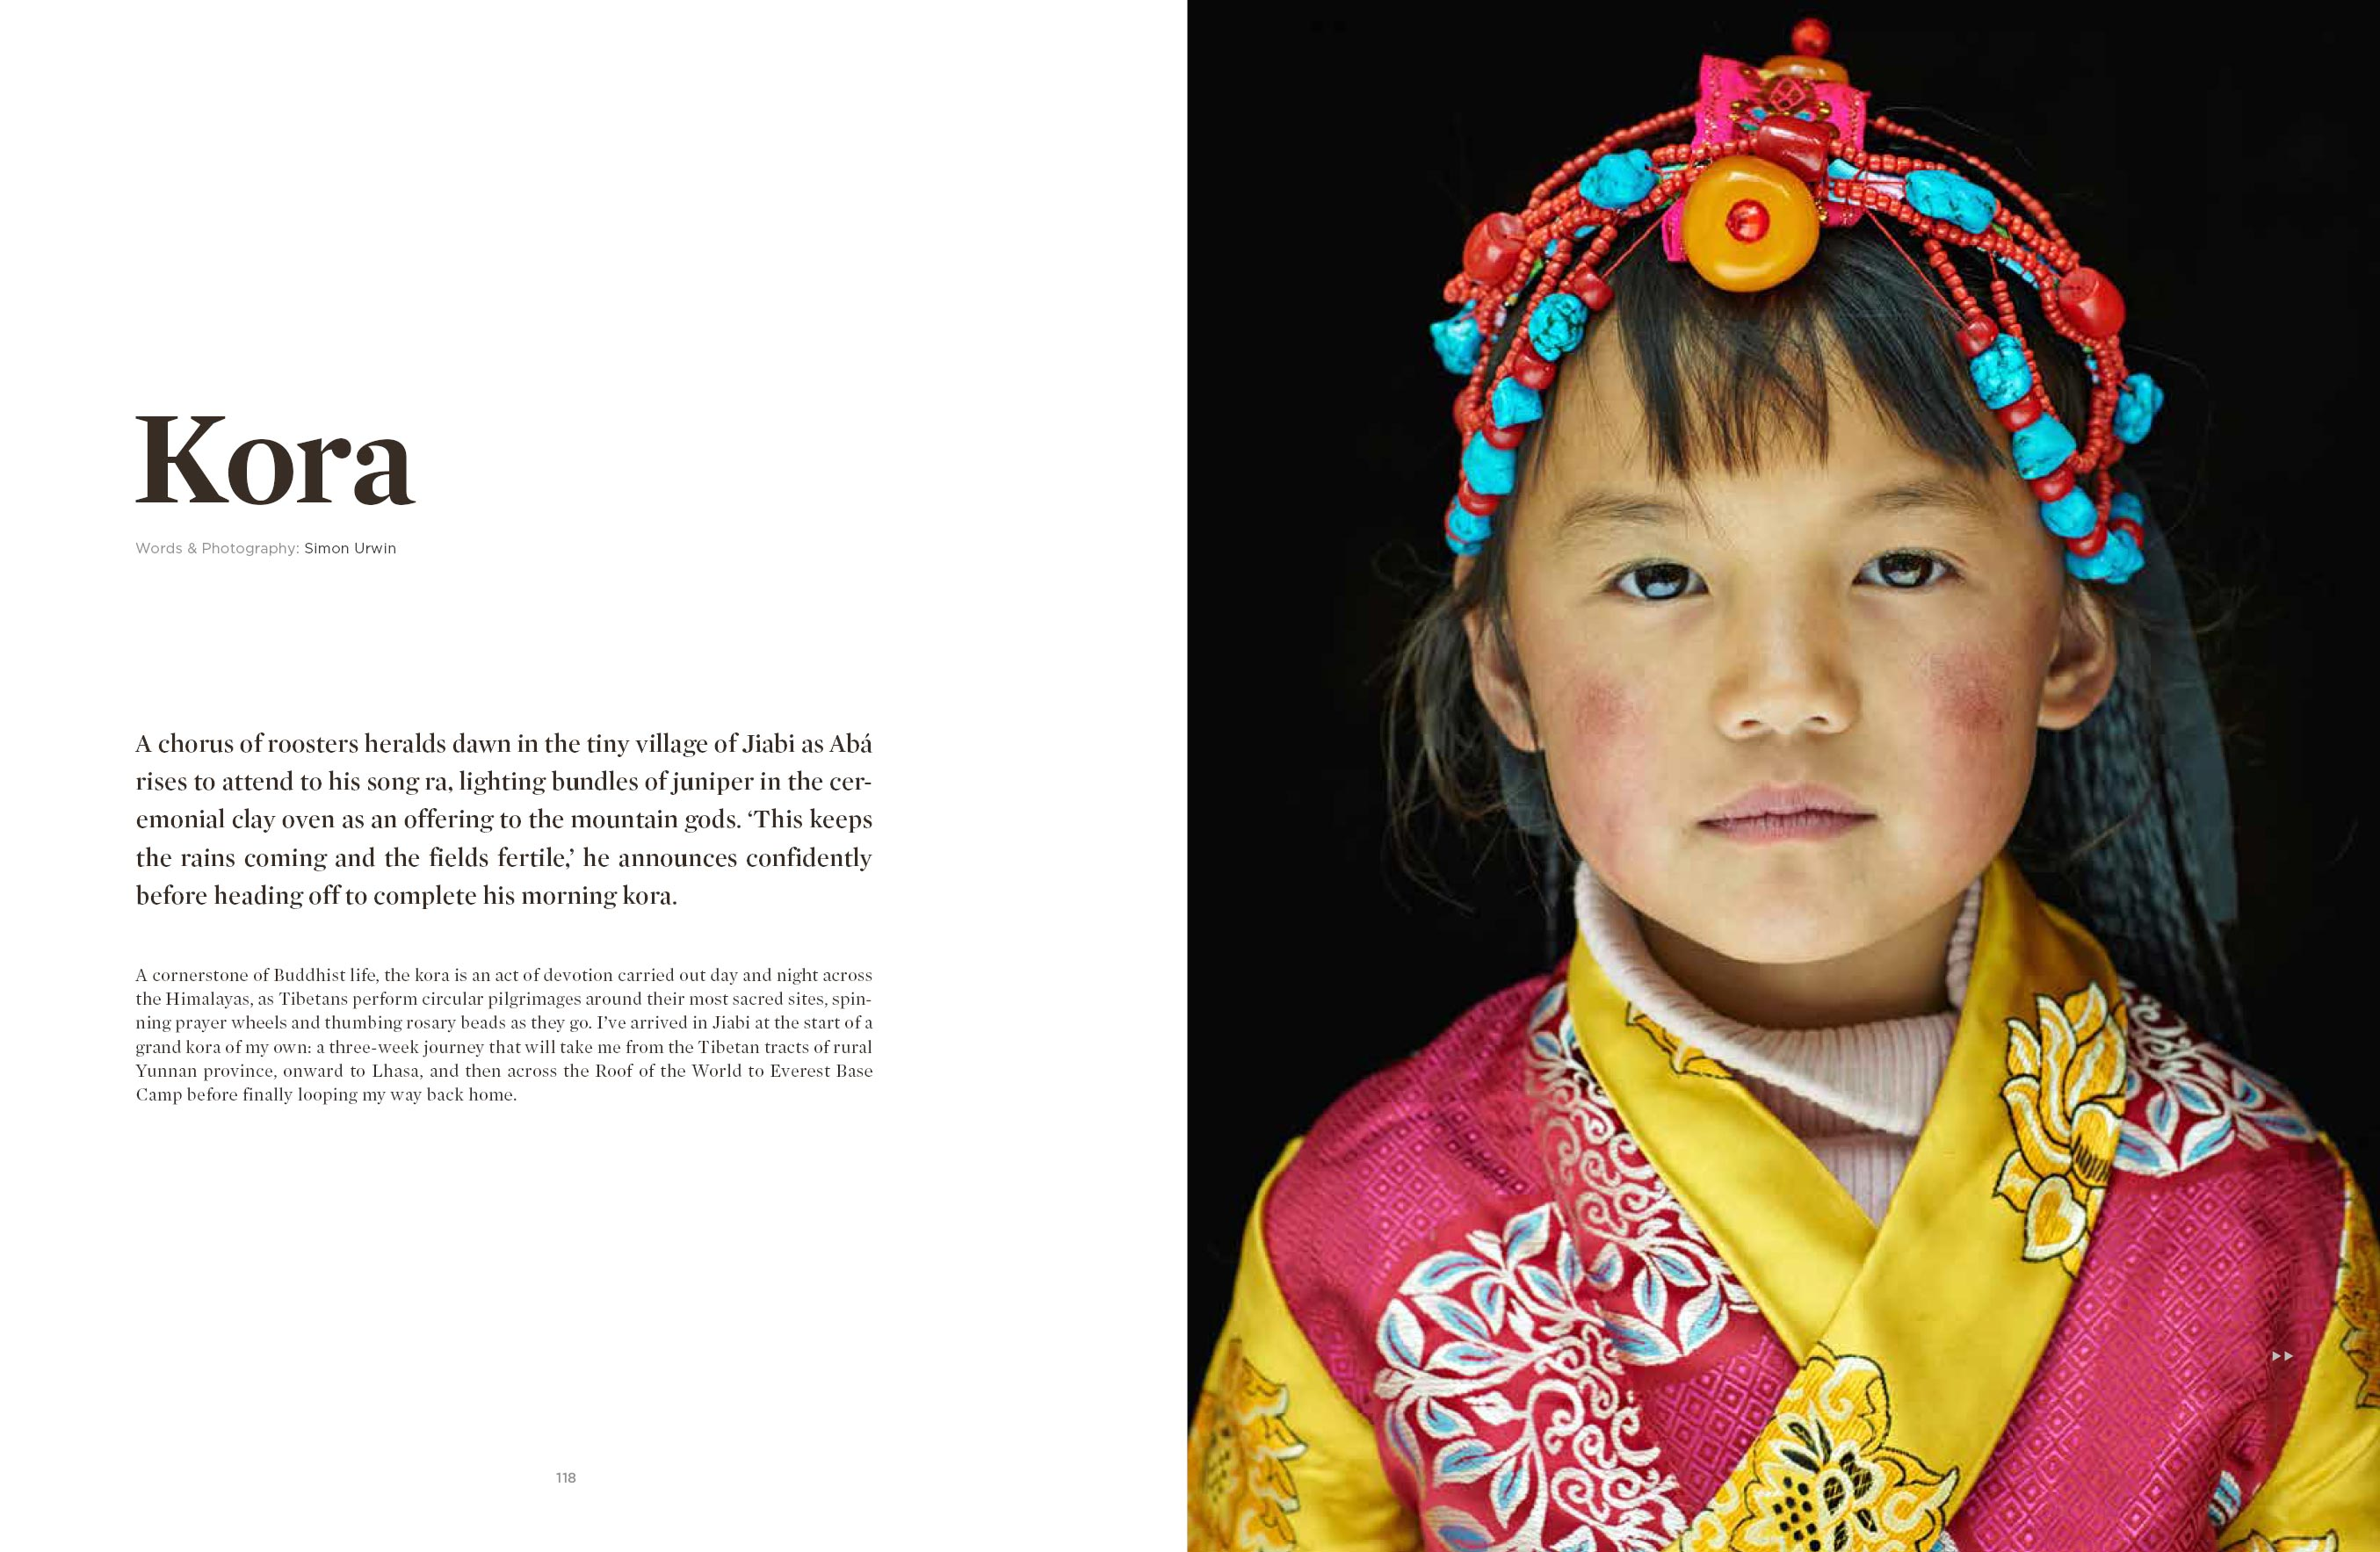 Tibet | Sidetracked Magazine | Simon Urwin | Published Articles & Photography